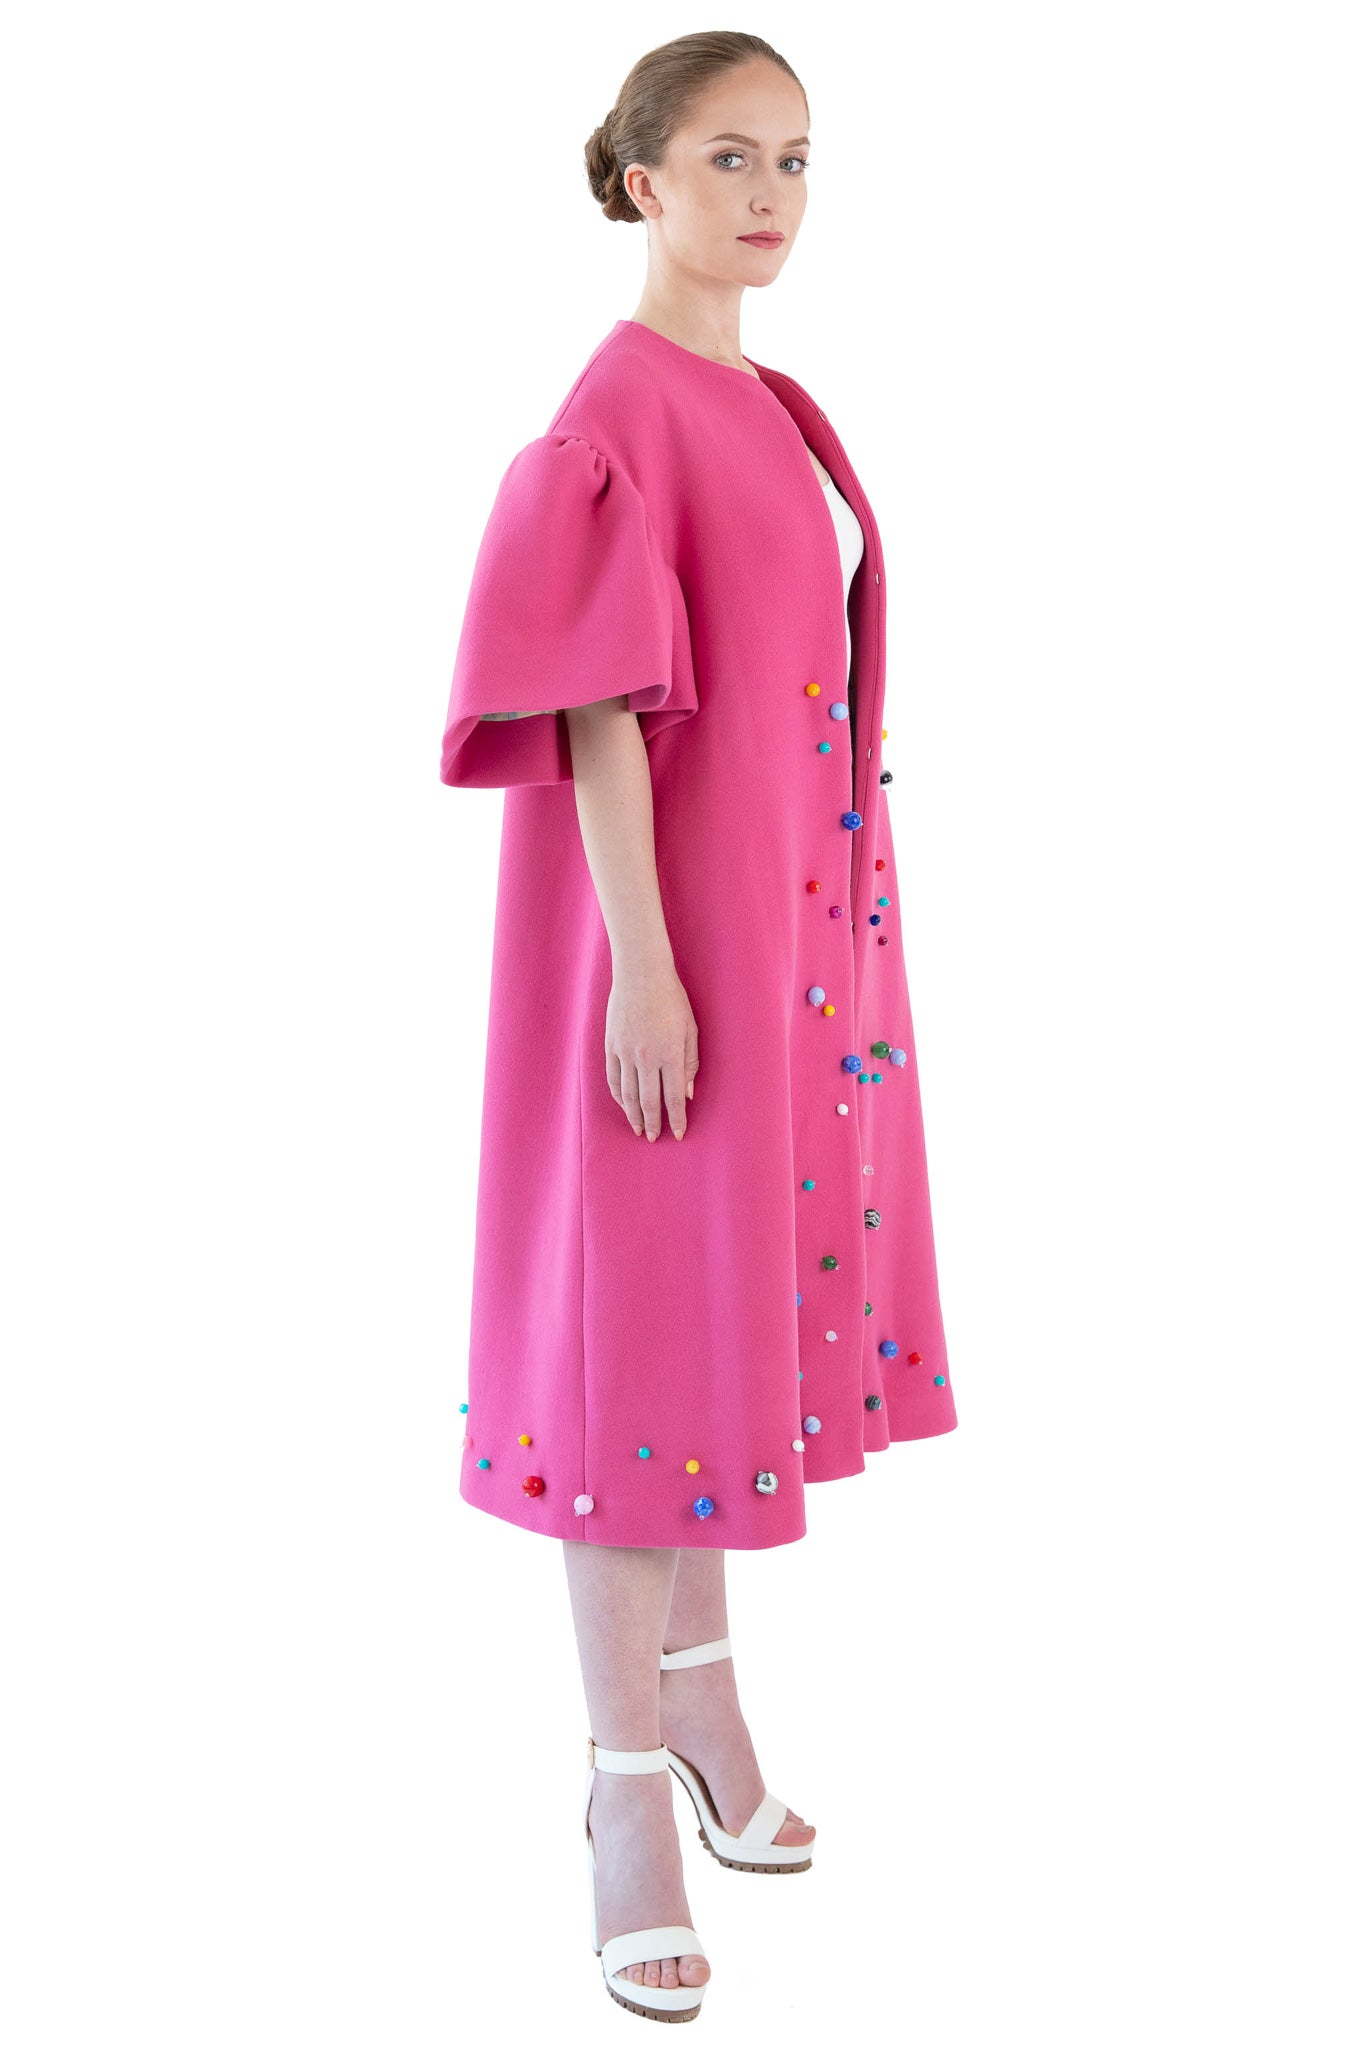 Pink beaded opera coat with bell sleeves